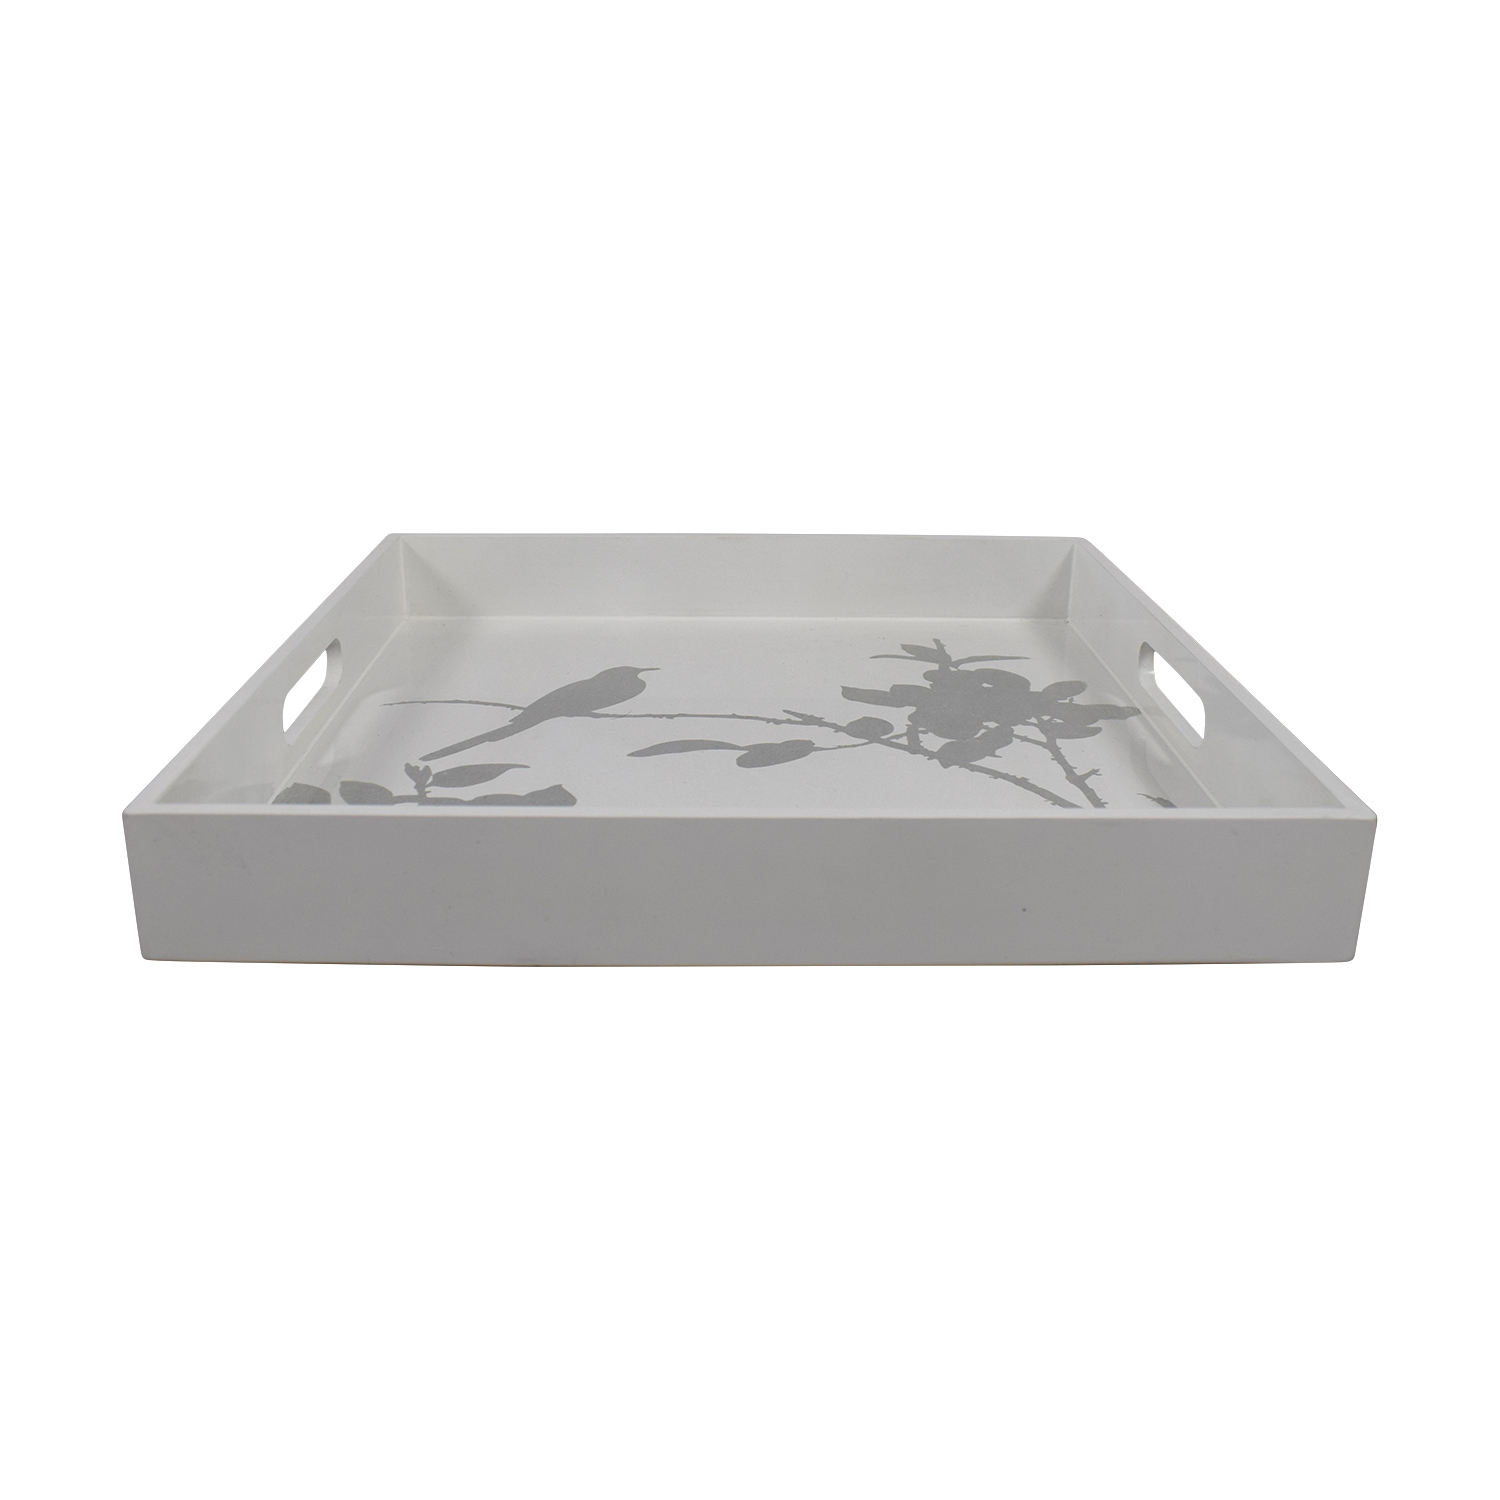 West Elm West Elm White Lacquered Tray with Silver Floral Bird Design used